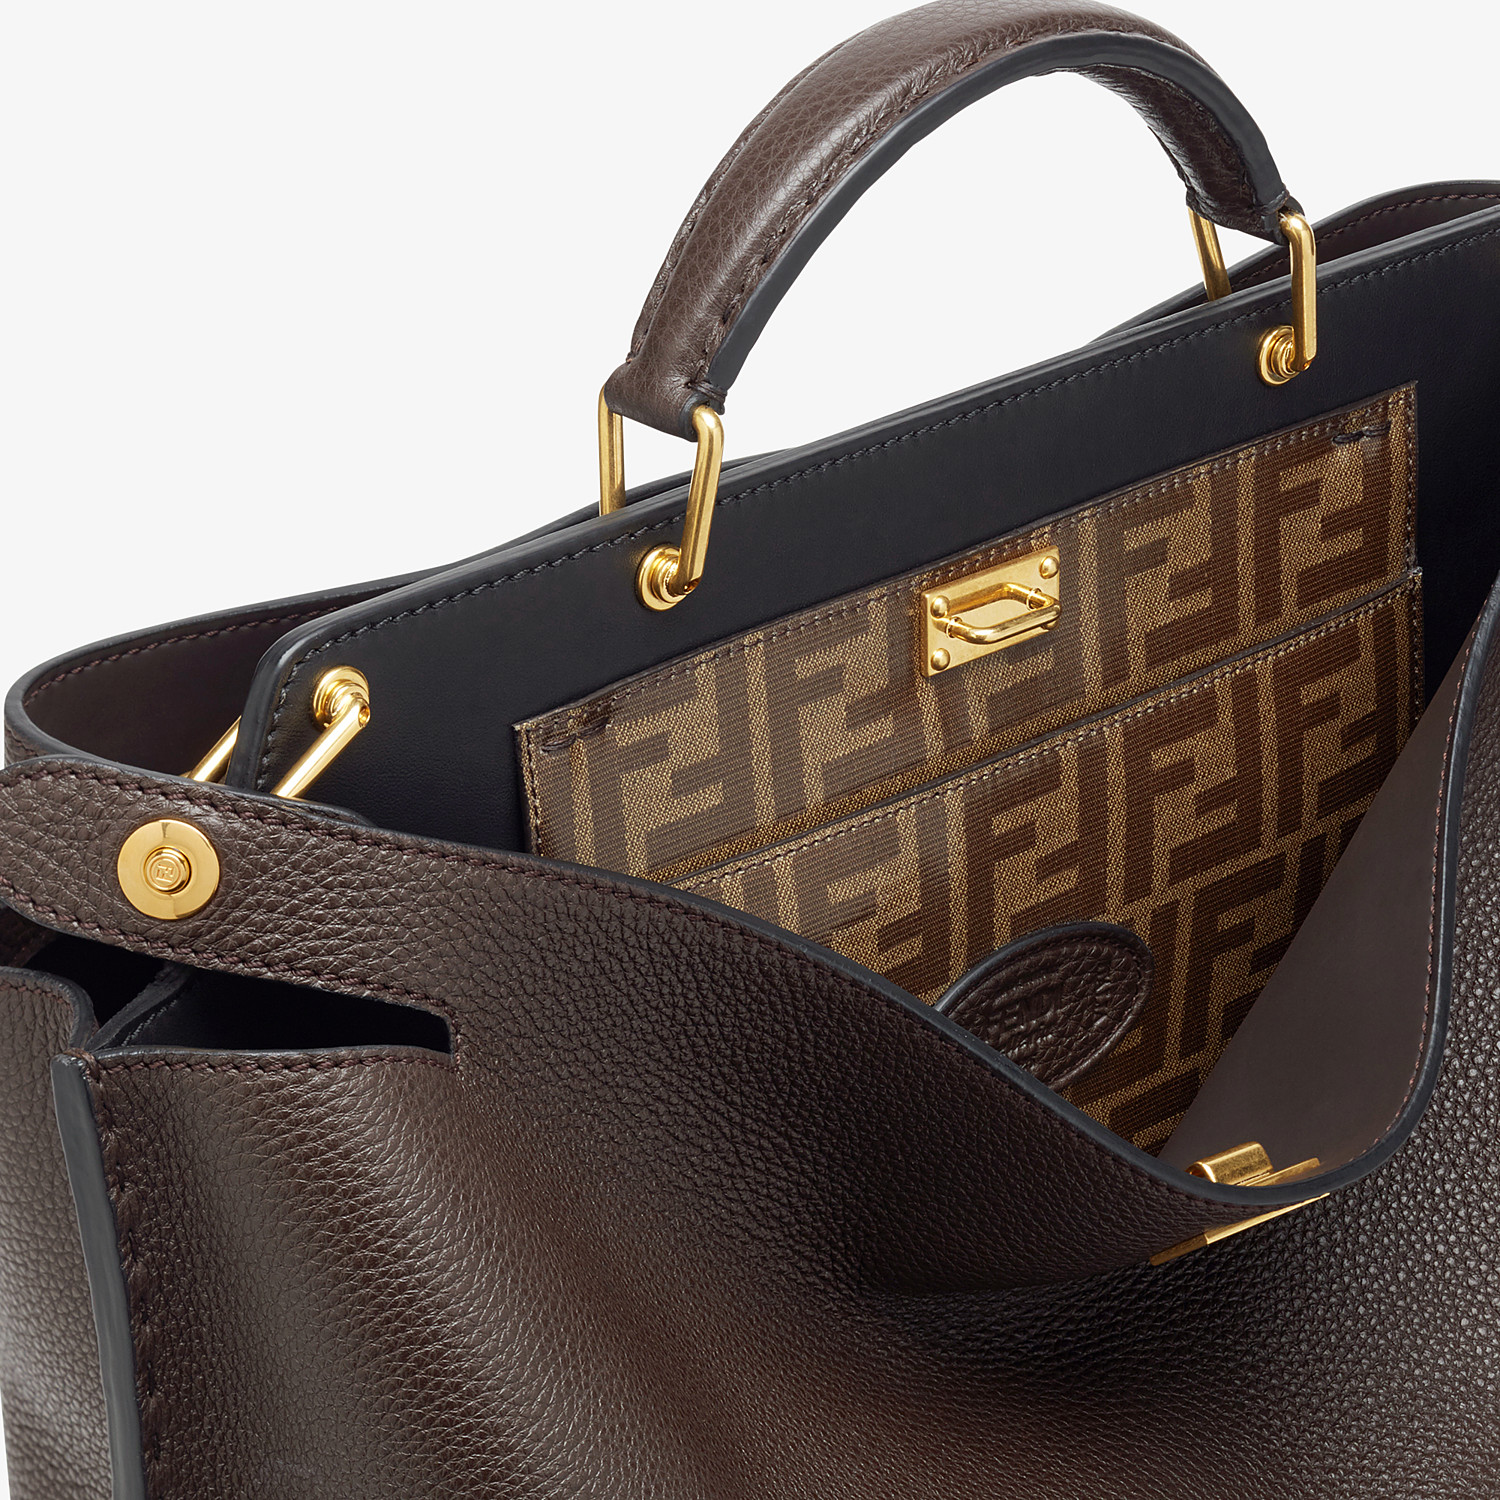 FENDI PEEKABOO ICONIC ESSENTIAL - Brown leather bag - view 5 detail